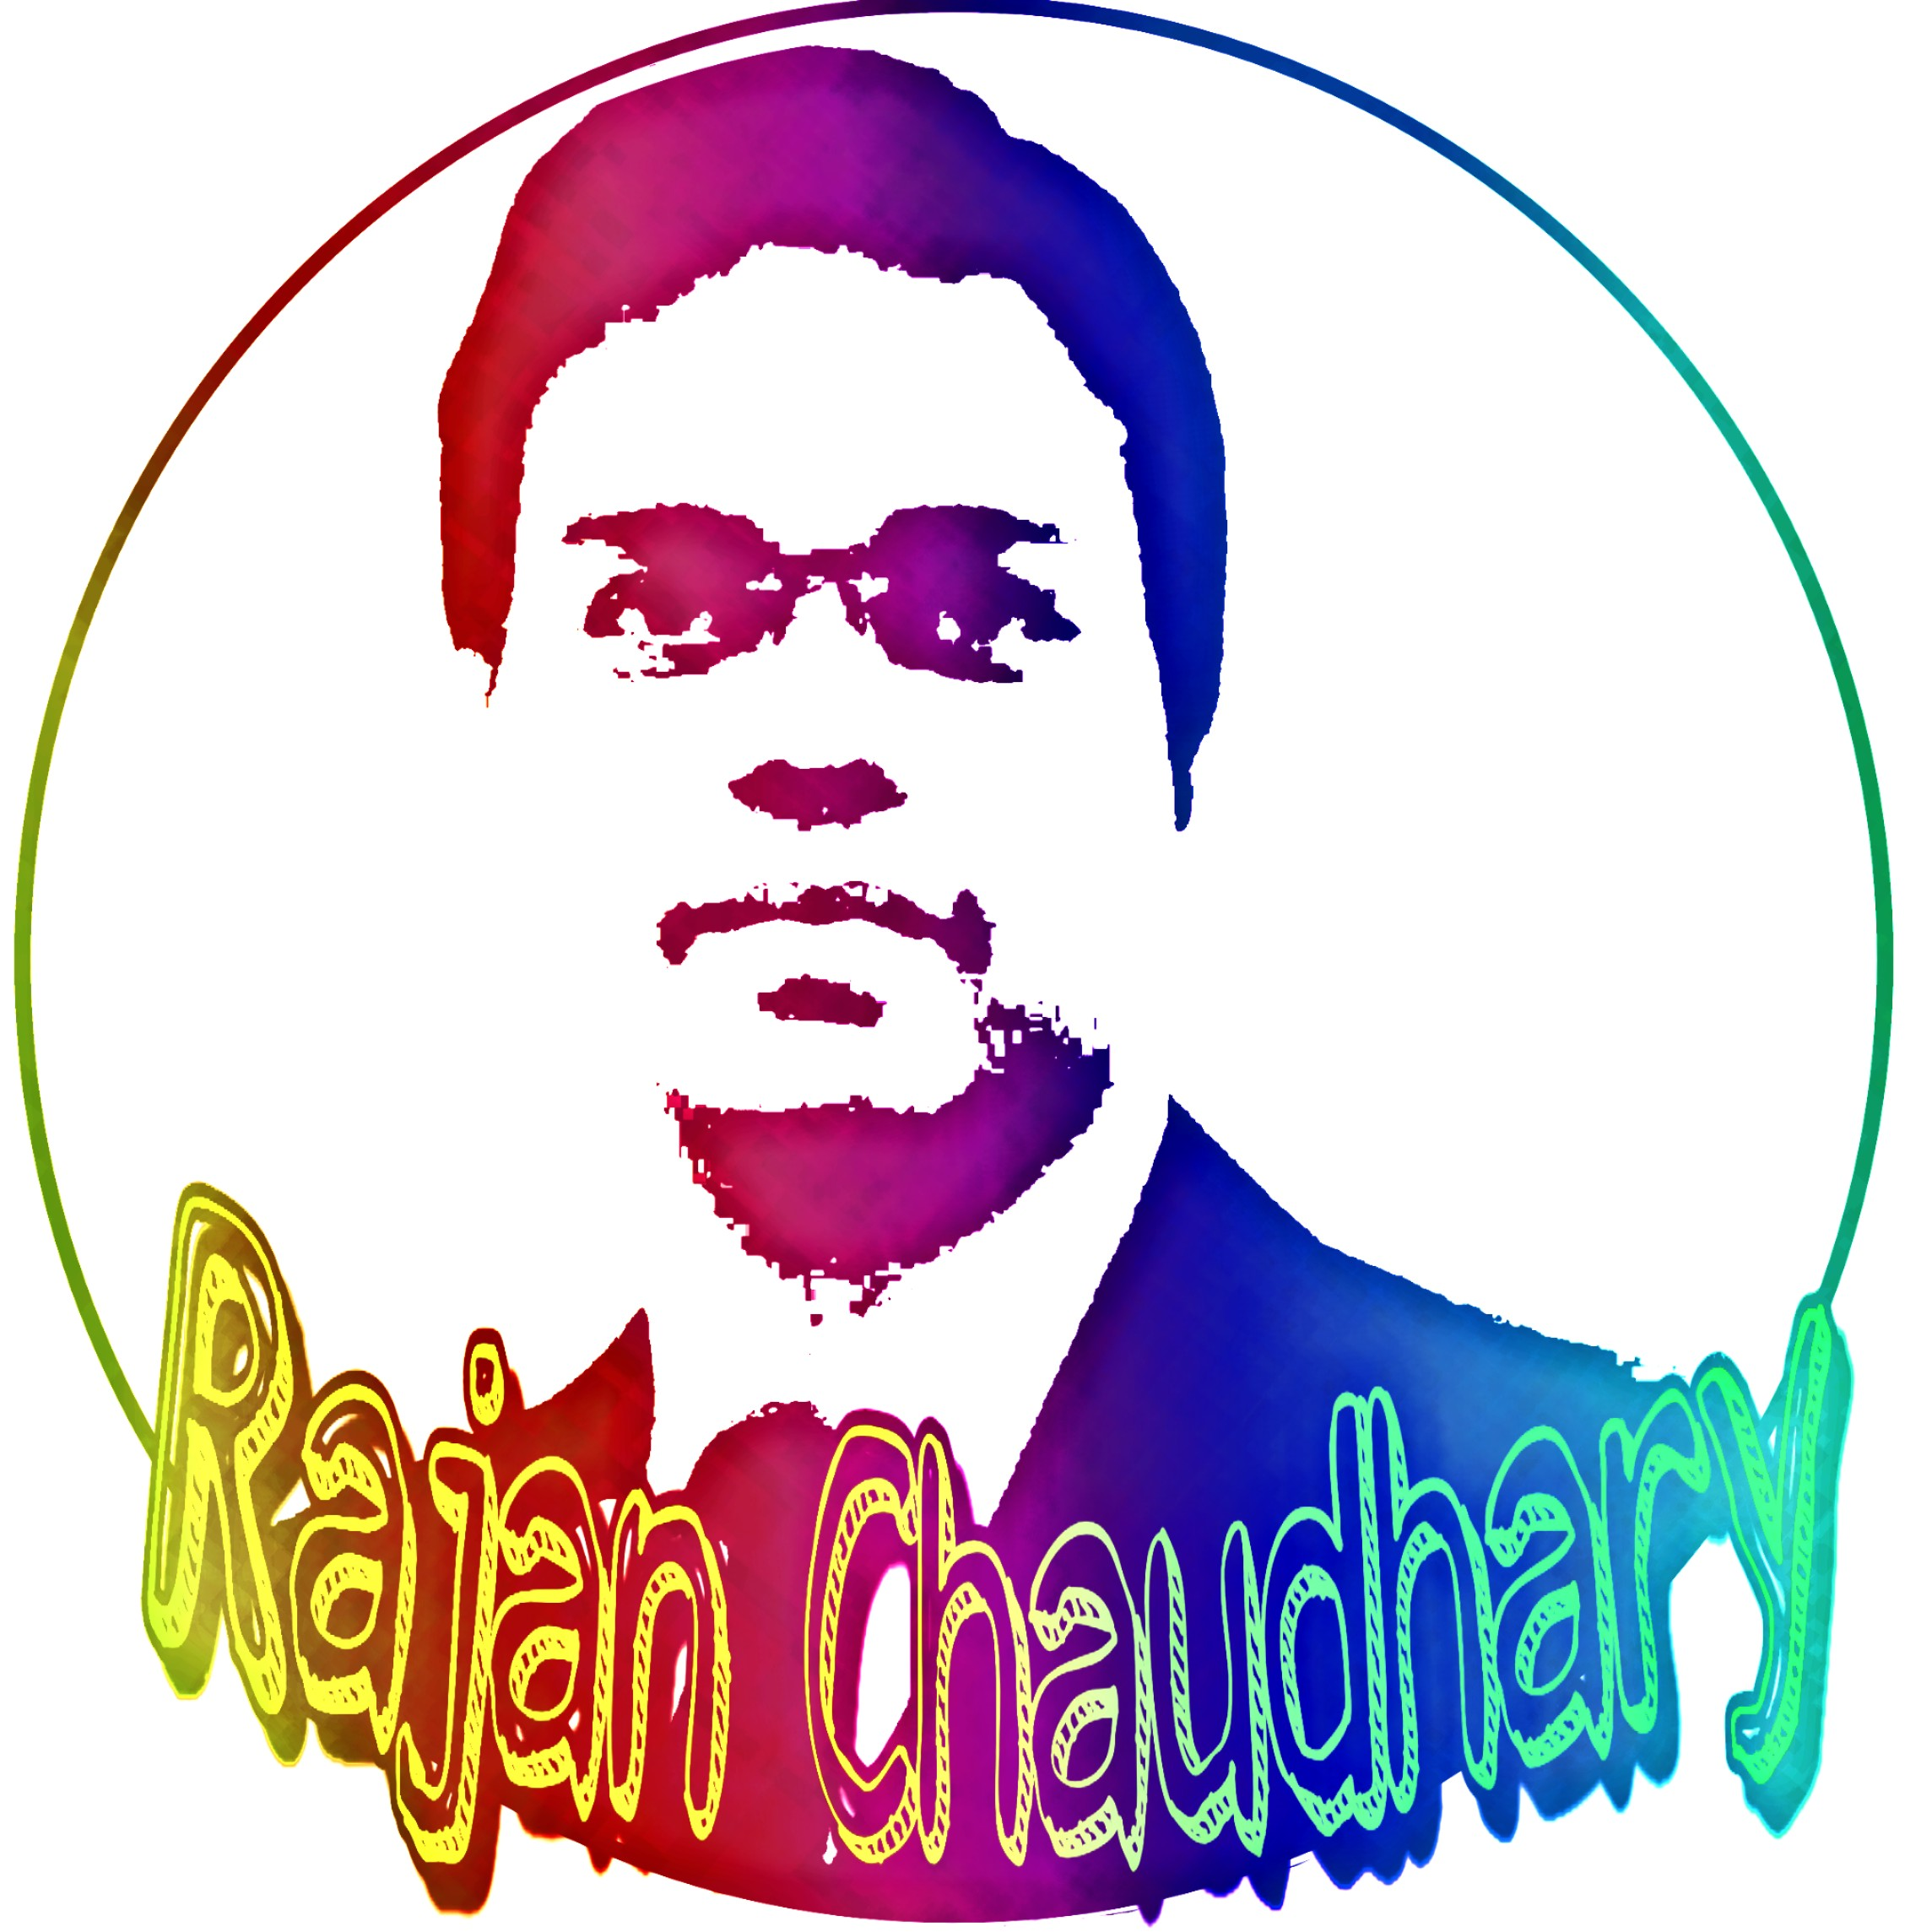 search Rajan Chaudhary